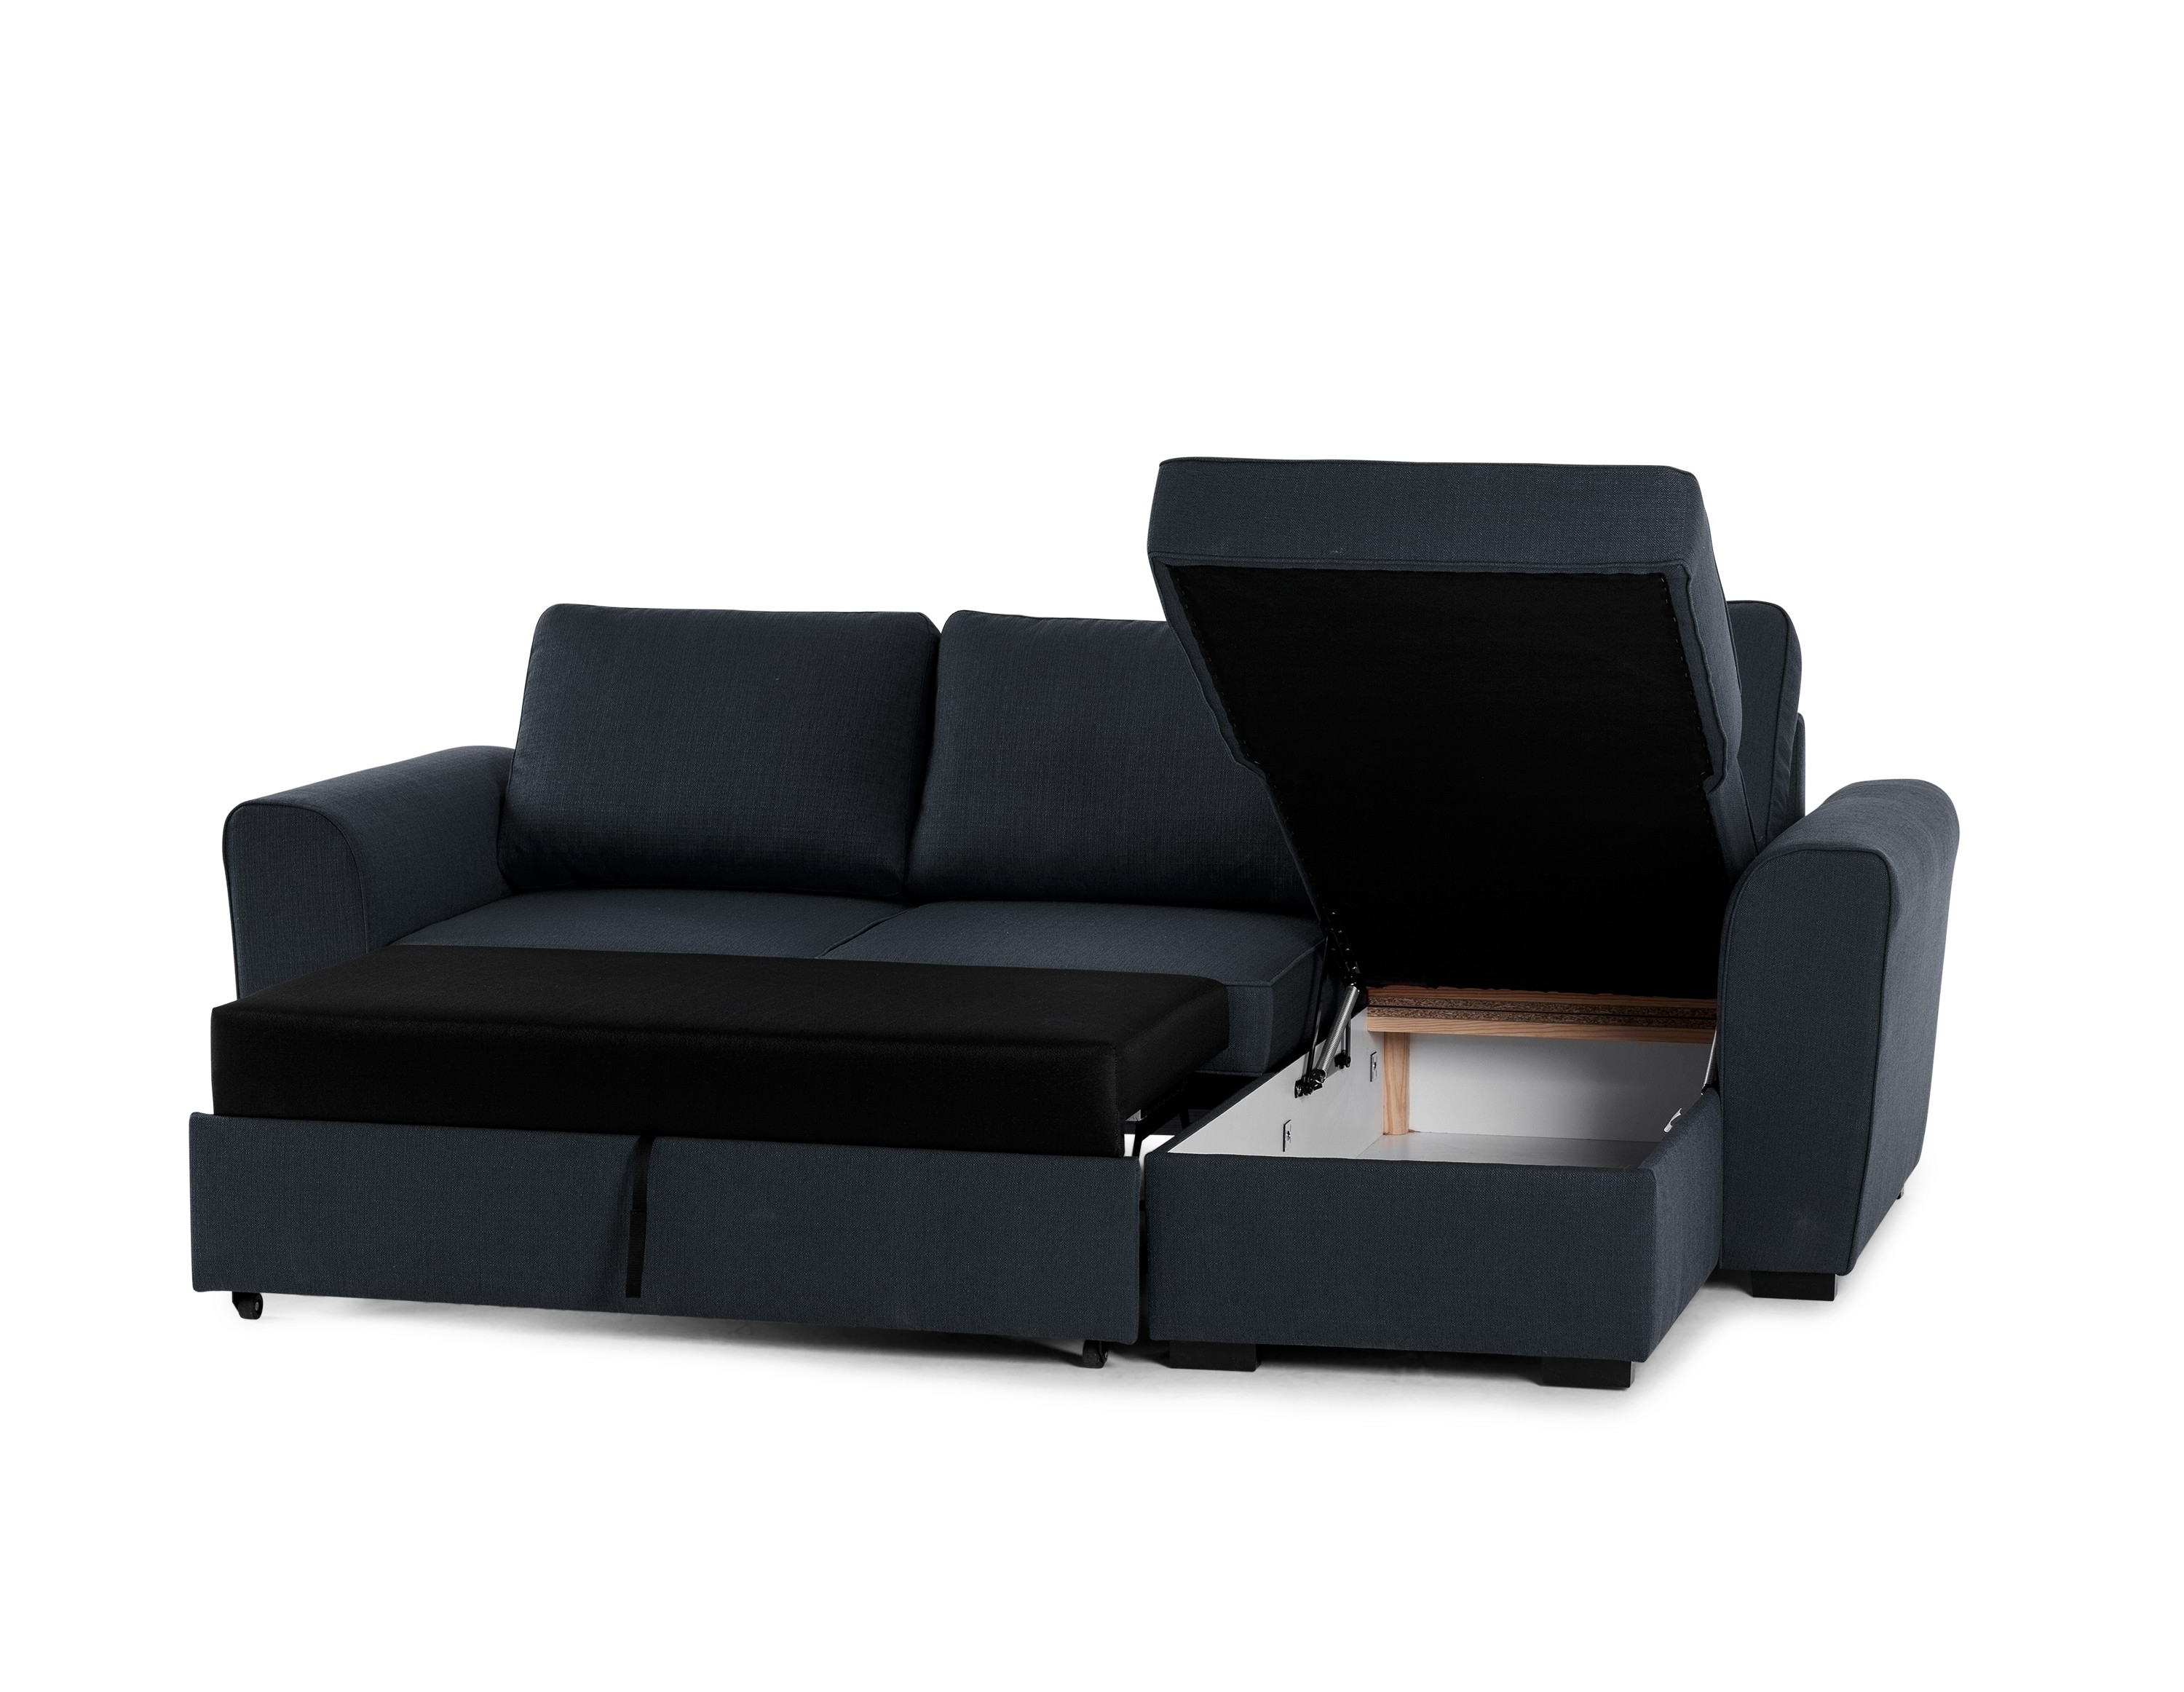 Best And Newest Sectional Sofas With Oversized Ottoman In Sectional Sofa Ottoman Convertible Sectional Sofa Sectional Sofa (View 2 of 15)